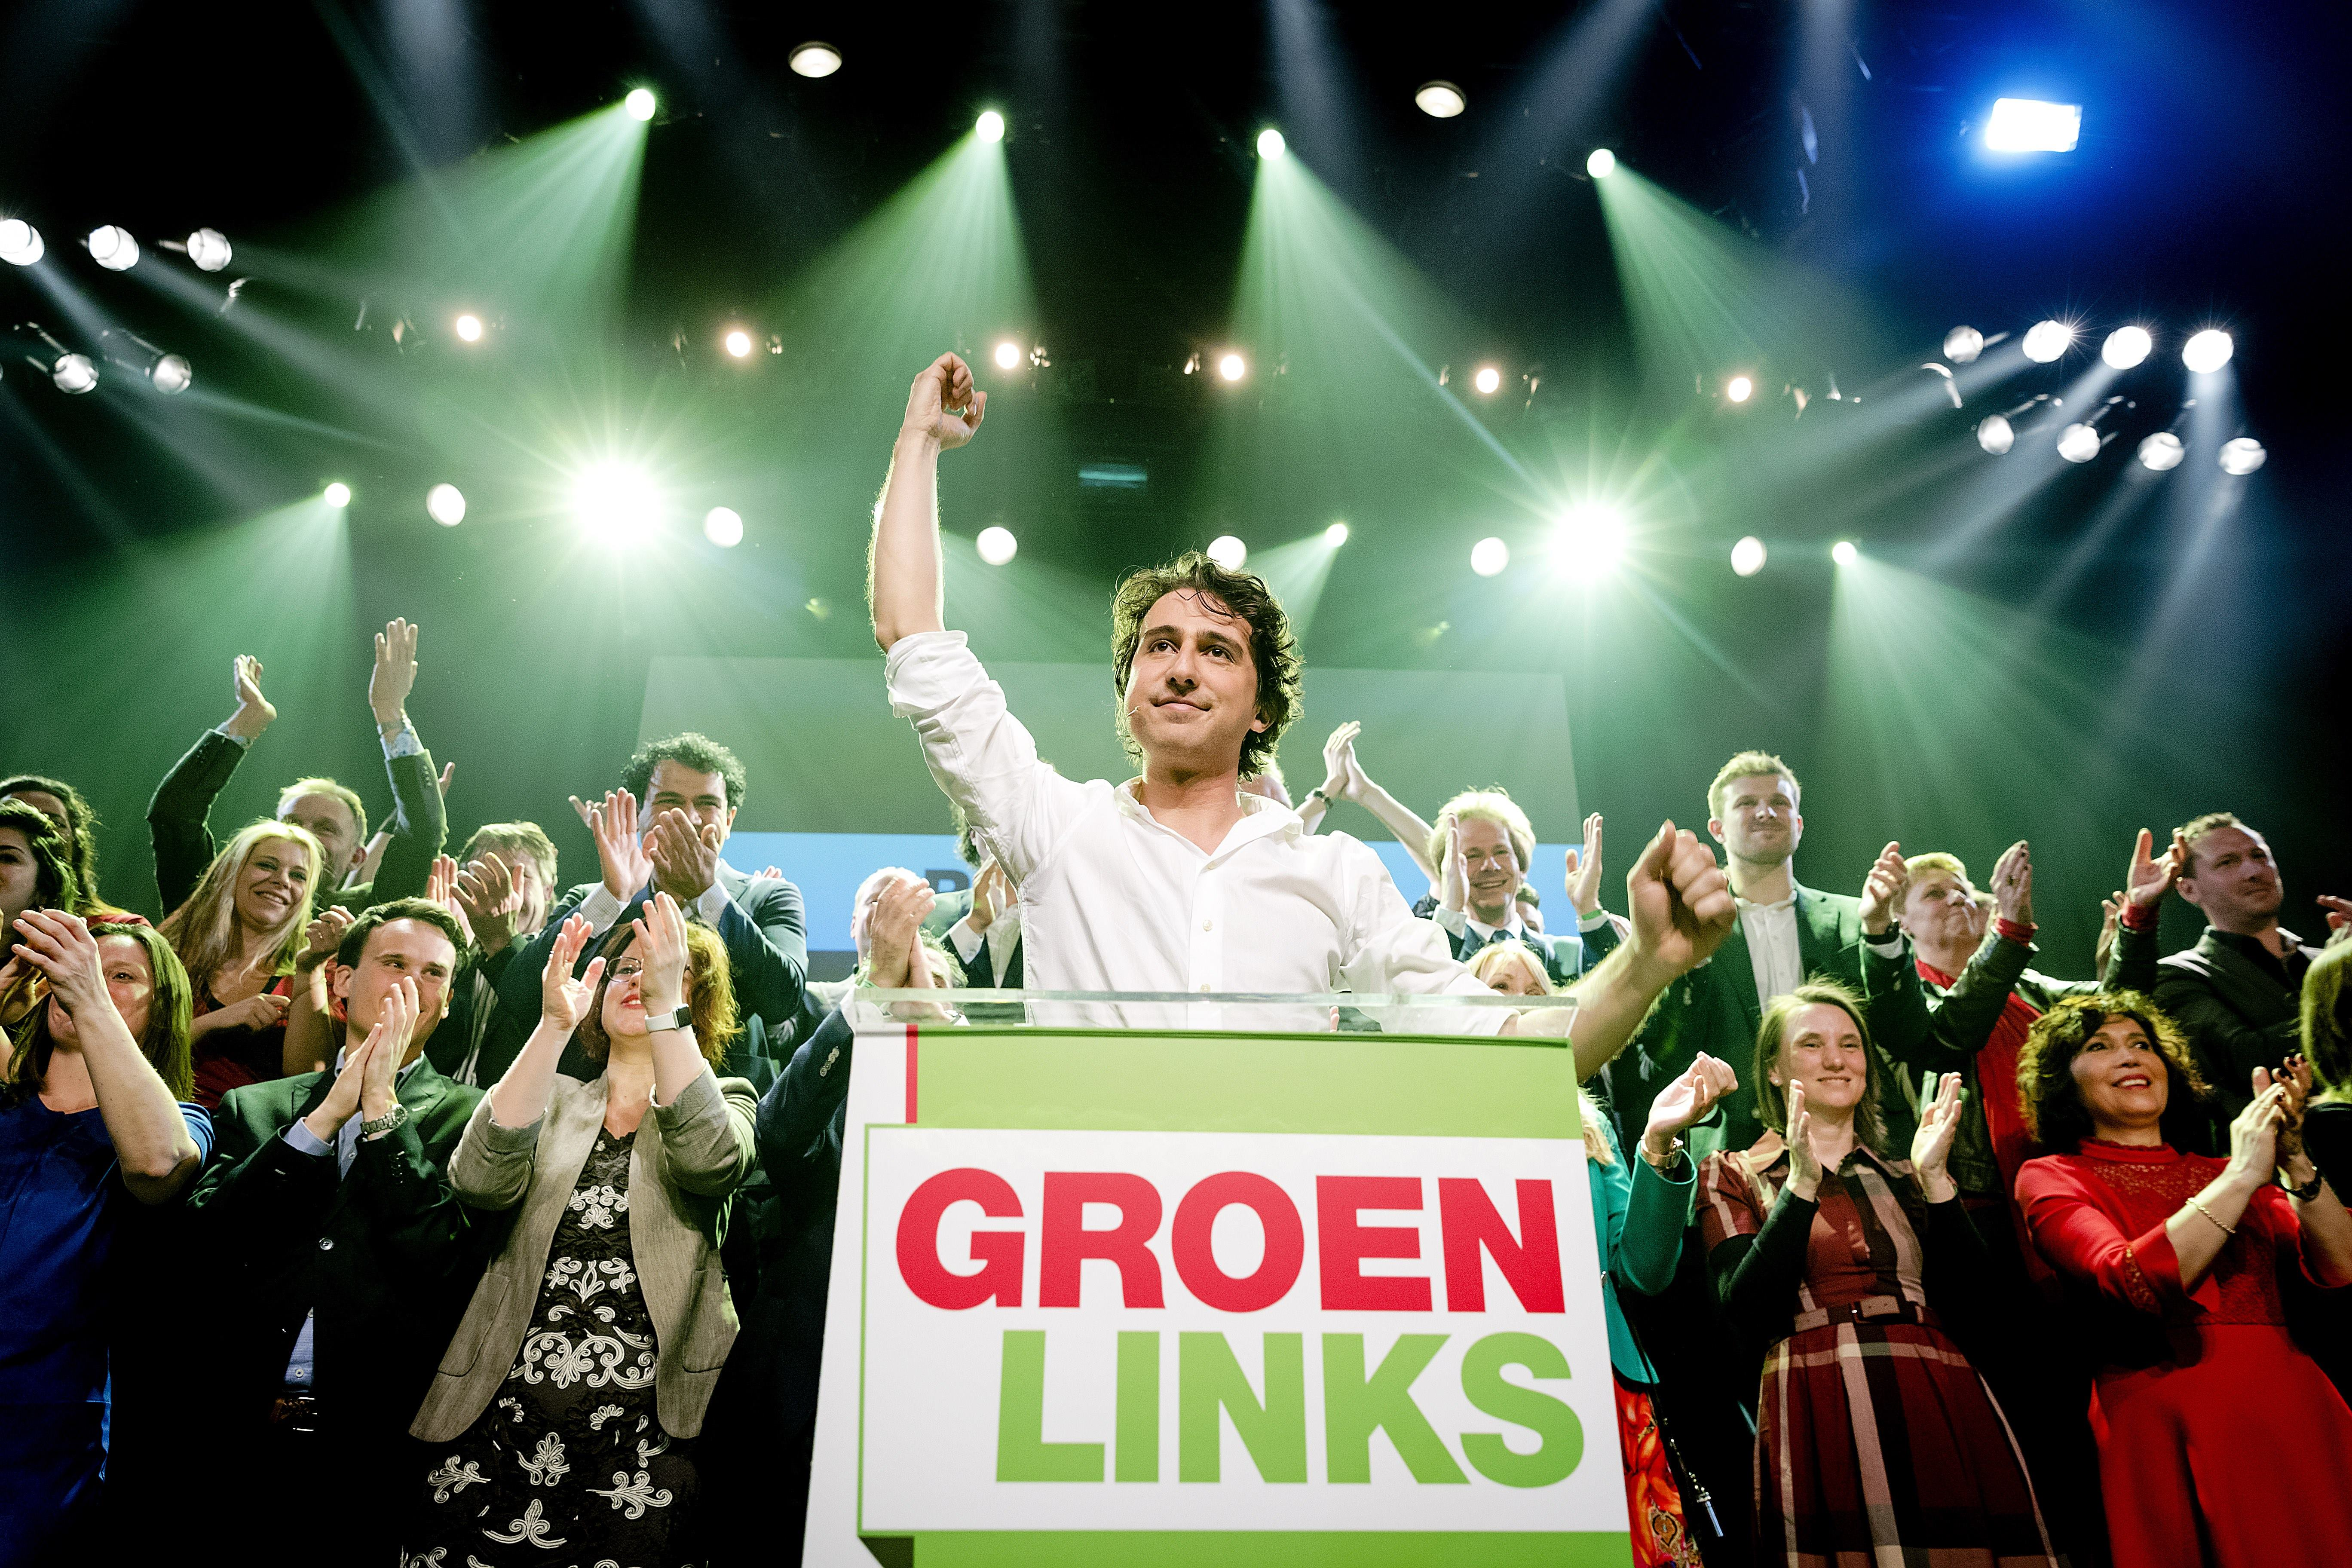 Leader Jesse Klaver of GroenLinks reacts during election night in Amsterdam, on March 15, 2017.                      The Liberal party of Dutch Prime Minister Mark Rutte was set to win the most seats in Wednesday's elections, forcing far-right Geert Wilders into second place along with two other parties,  the Christian Democratic Appeal and the Democracy party D66, exit polls predicted. / AFP PHOTO / ANP / Robin van Lonkhuijsen / Netherlands OUT        (Photo credit should read ROBIN VAN LONKHUIJSEN/AFP/Getty Images)